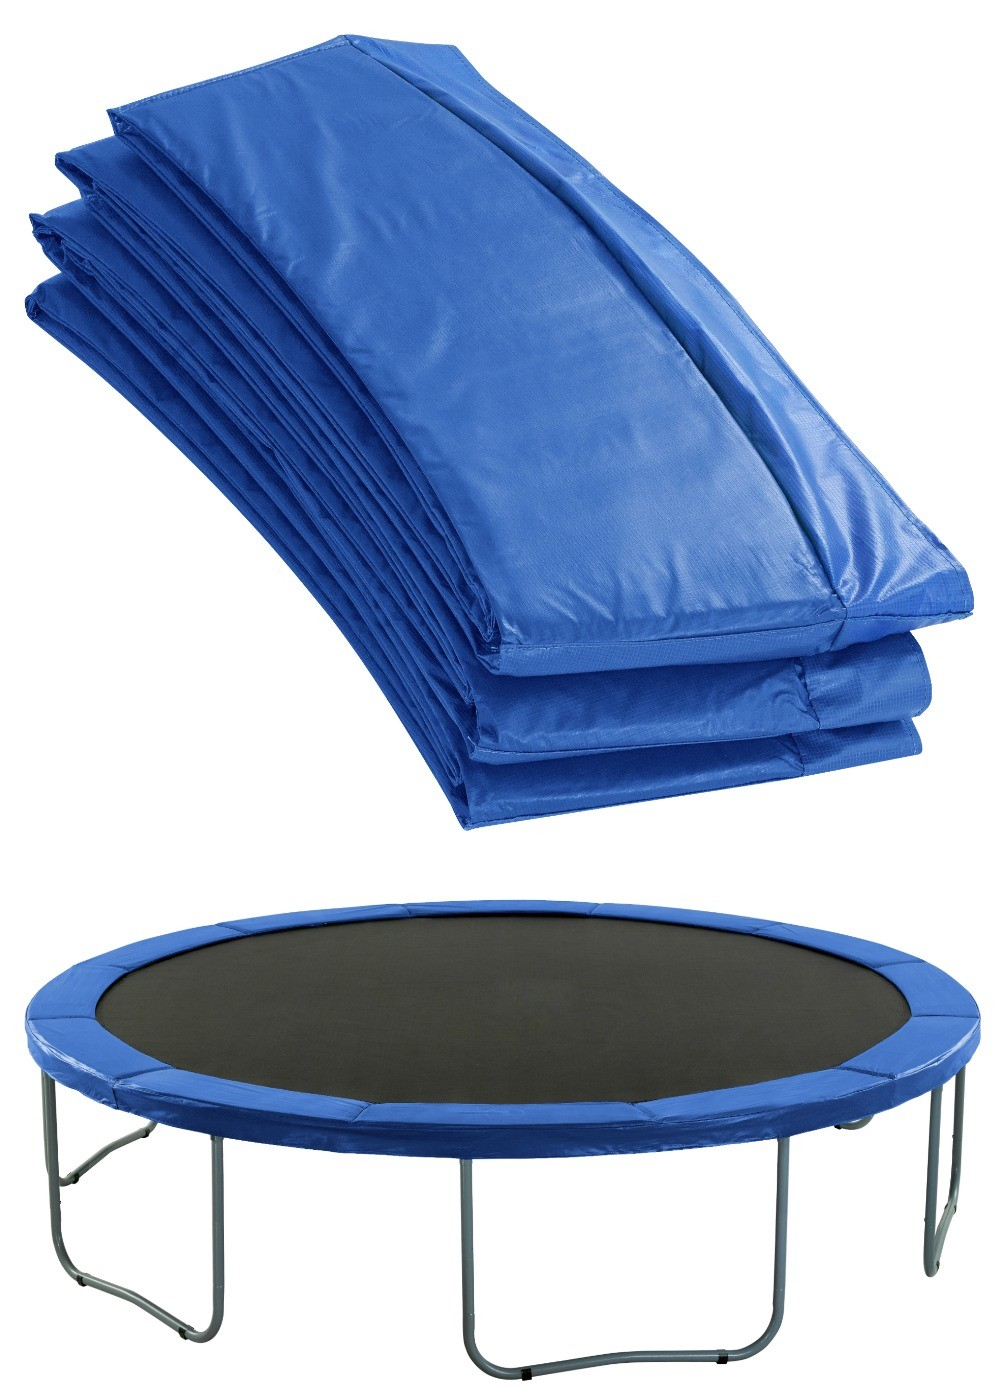 Premium Trampoline Replacement Safety Pad (Spring Cover) | Padding for 183cm 6ft Trampoline | Blue